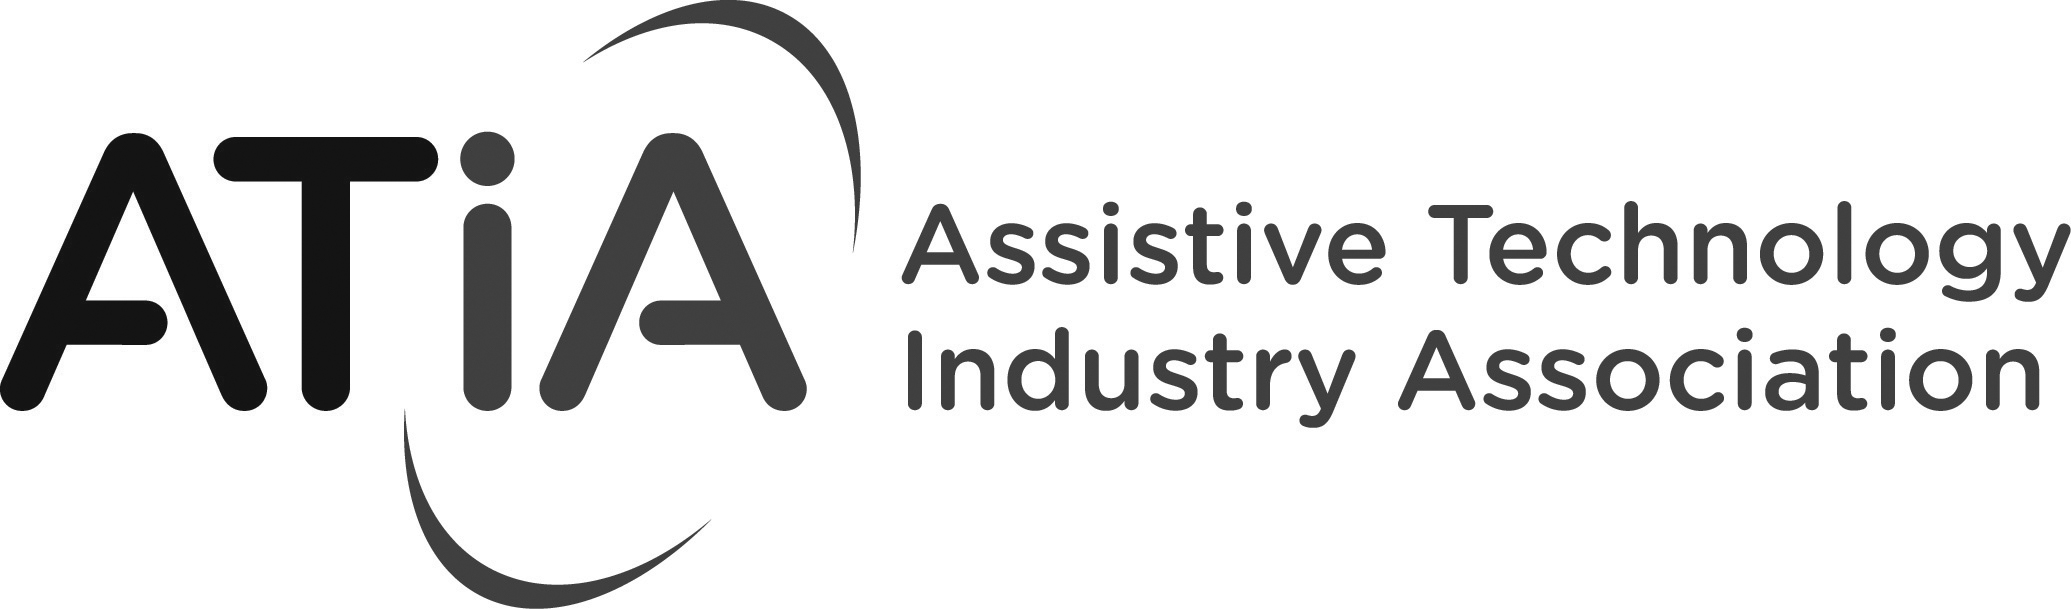 Logo atia, Assistive Technology industry Association